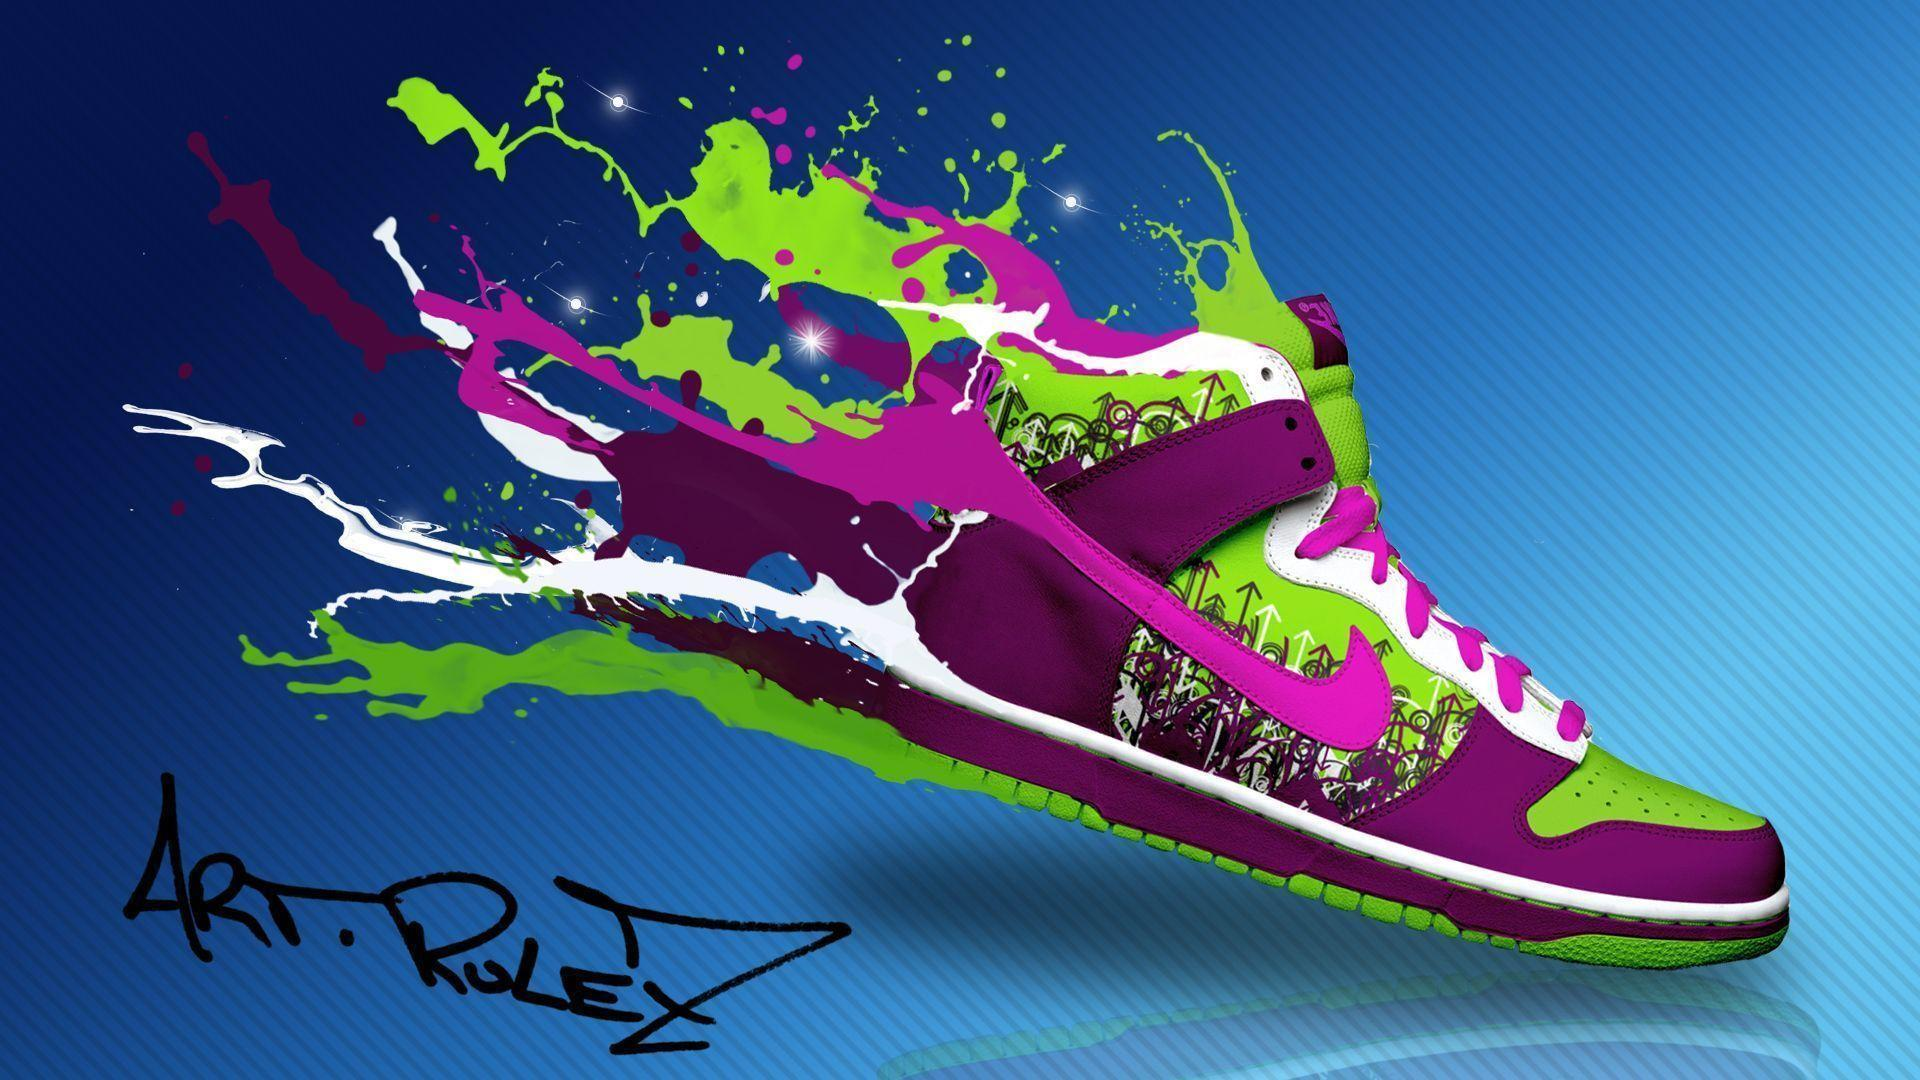 Nike Shoes Wallpapers - Wallpaper Cave Nike Track Wallpaper